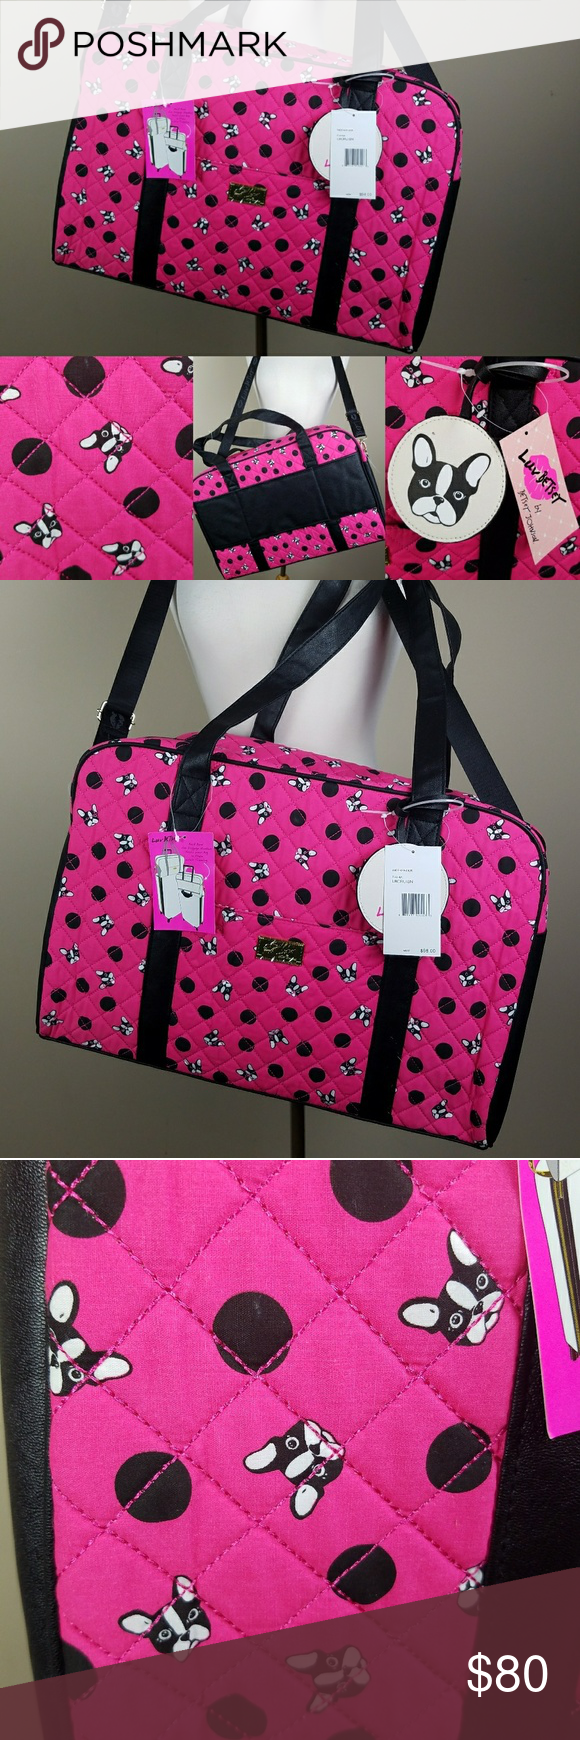 9fba68e810 Betsey Johnson French bulldog weekender bag Large duffle with French  bulldogs or Boston terriers. New